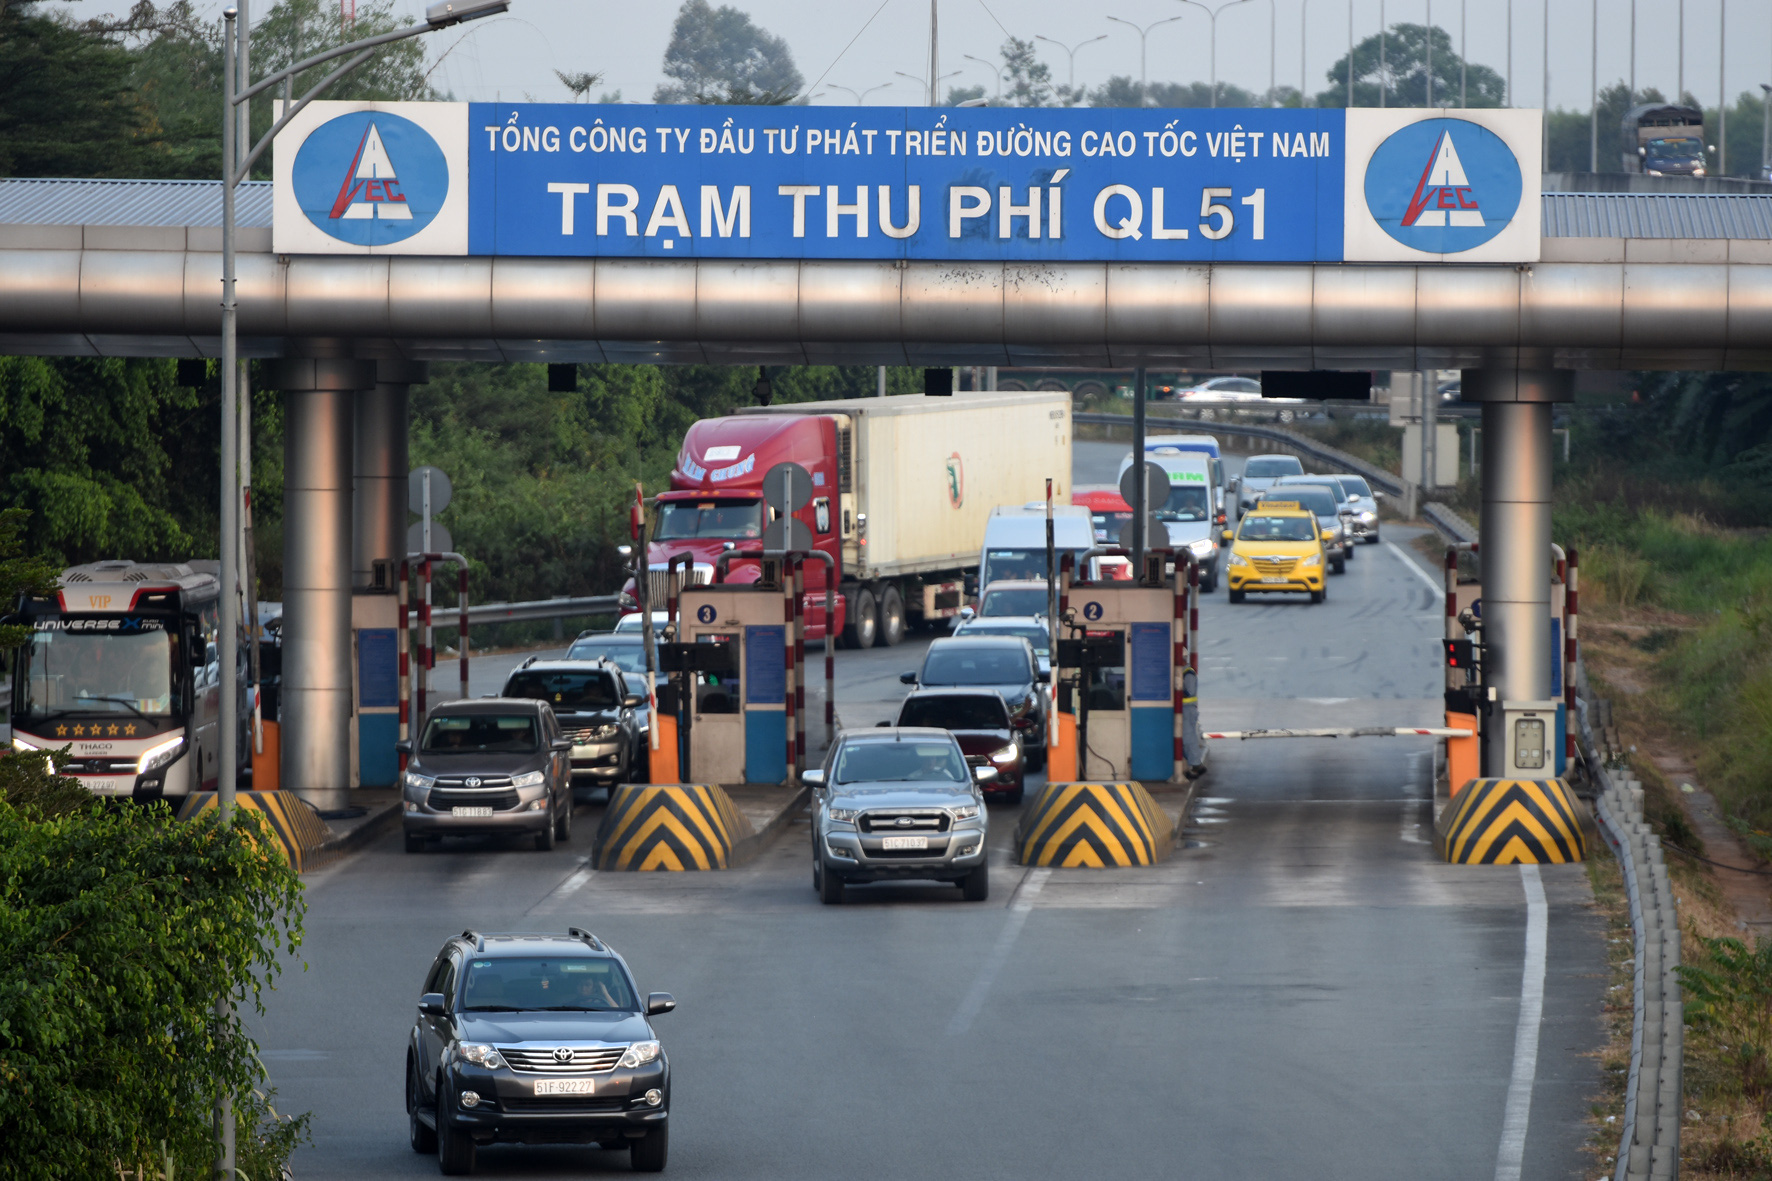 A tollgate along the Ho Chi Minh City-Long Thanh-Dau Giay Expressway where a robbery took place on January 3, 2020. Photo: A Loc / Tuoi Tre